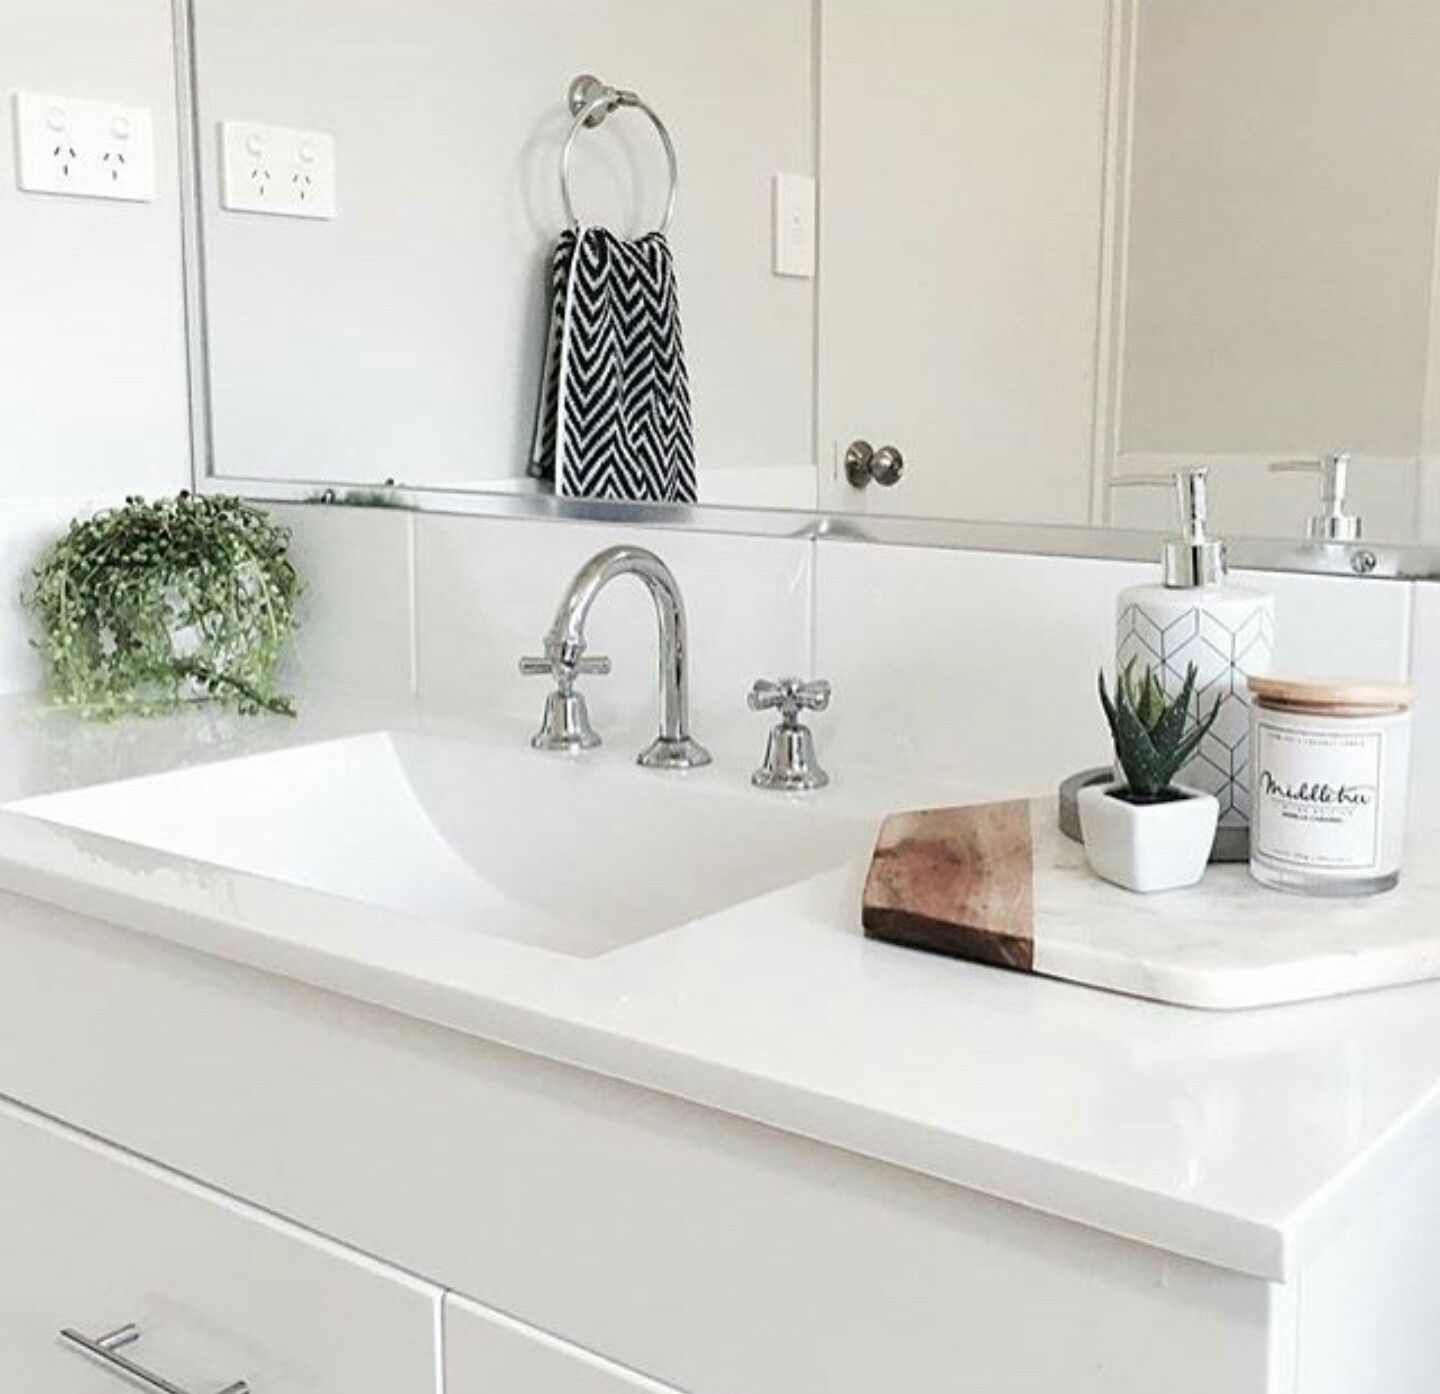 Pot instead of candle soap dish instead of pot kmart for Bathroom inspo